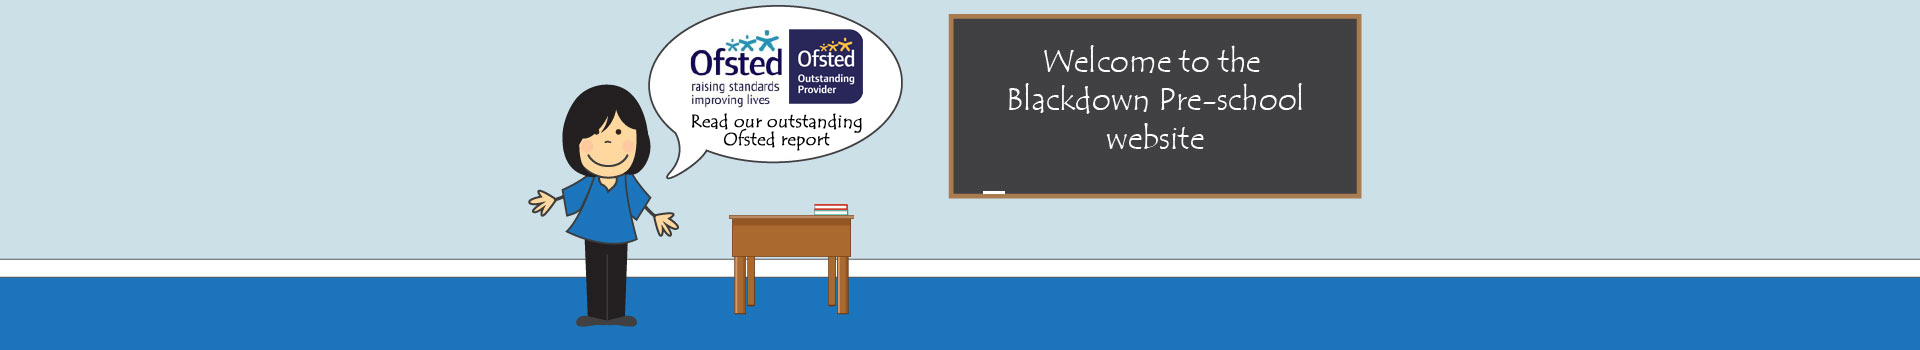 Welcome to Blackdown preschool website